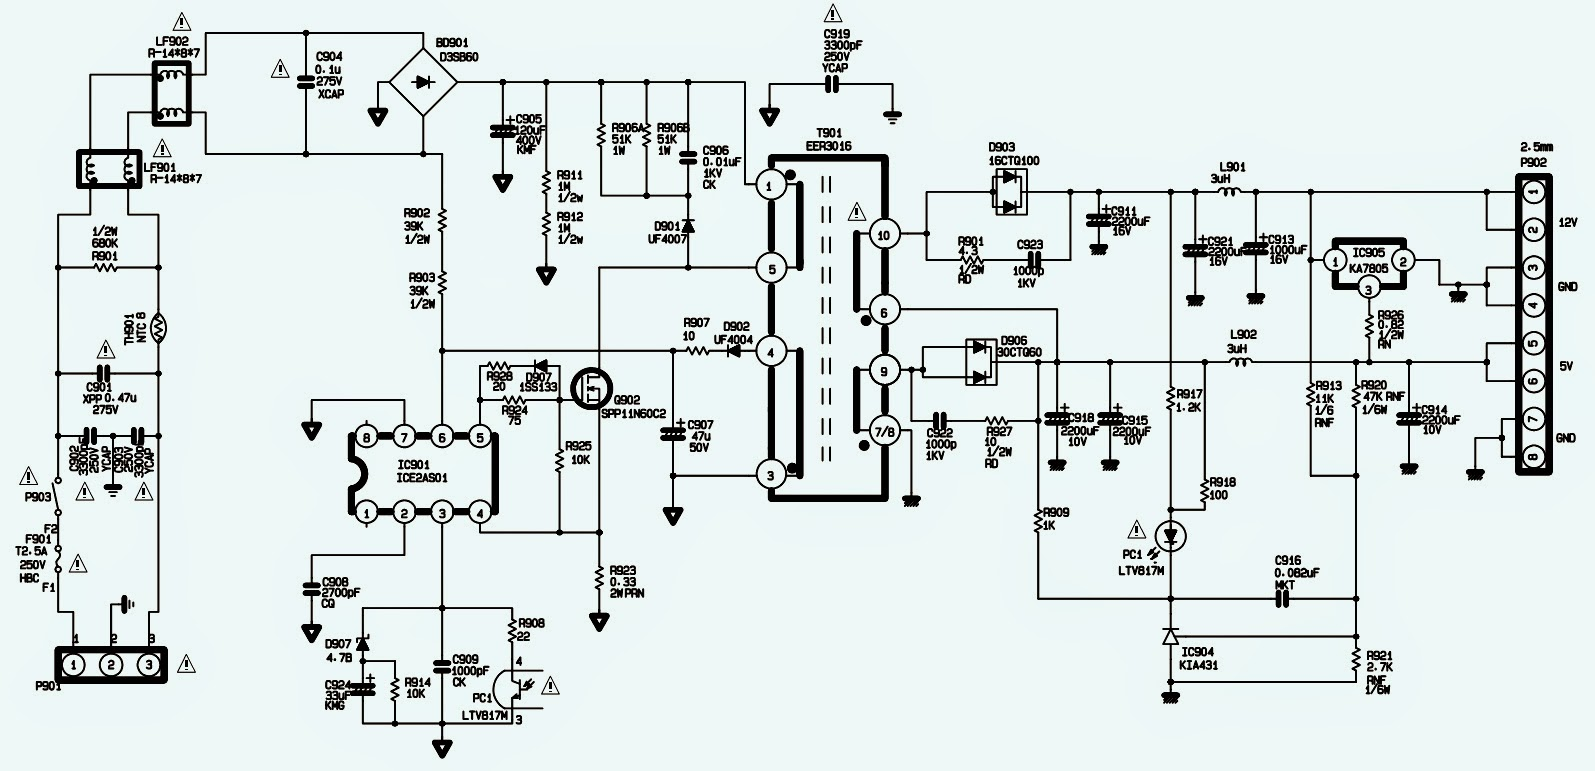 LG FLATRON L1810B Monitor SMPS SCHEMATIC Power Supply Circuit – Lg Wiring Diagram